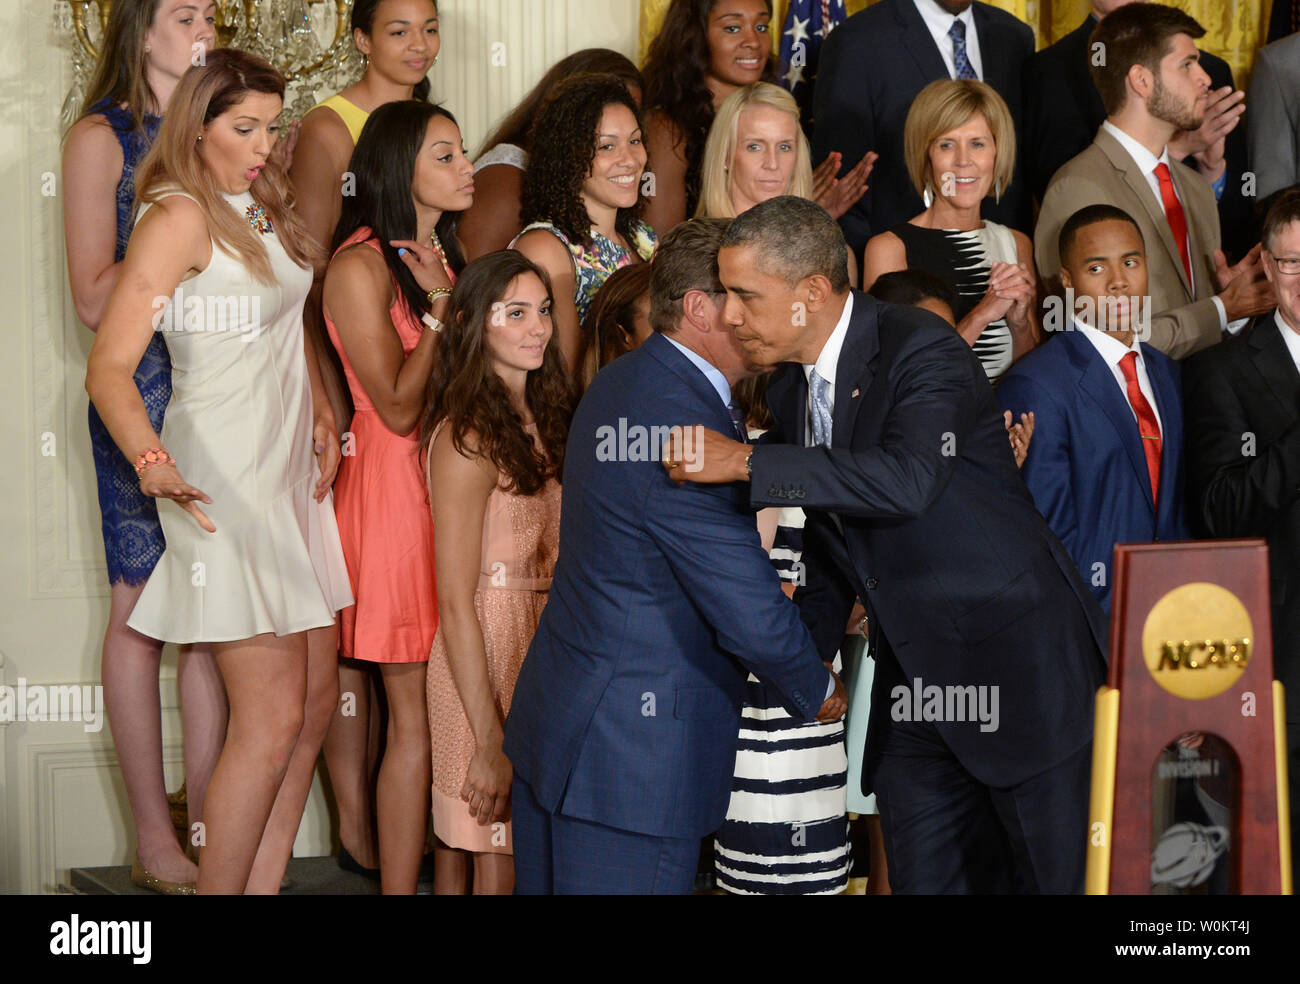 University of Connecticut star basketball player Stefanie Dolson (L) slips off the podium riser as U.S. President Barack Obama hugs head coach Geno Auriemma during a presentation in the East Room of the White House in Washington, DC on June 9, 2014.  Obama honored both the women's and men's basketball teams from the University of Connecticut as they both won the NCAA collegiate basketball championships for the 2013-2014 season.    UPI/Pat Benic - Stock Image